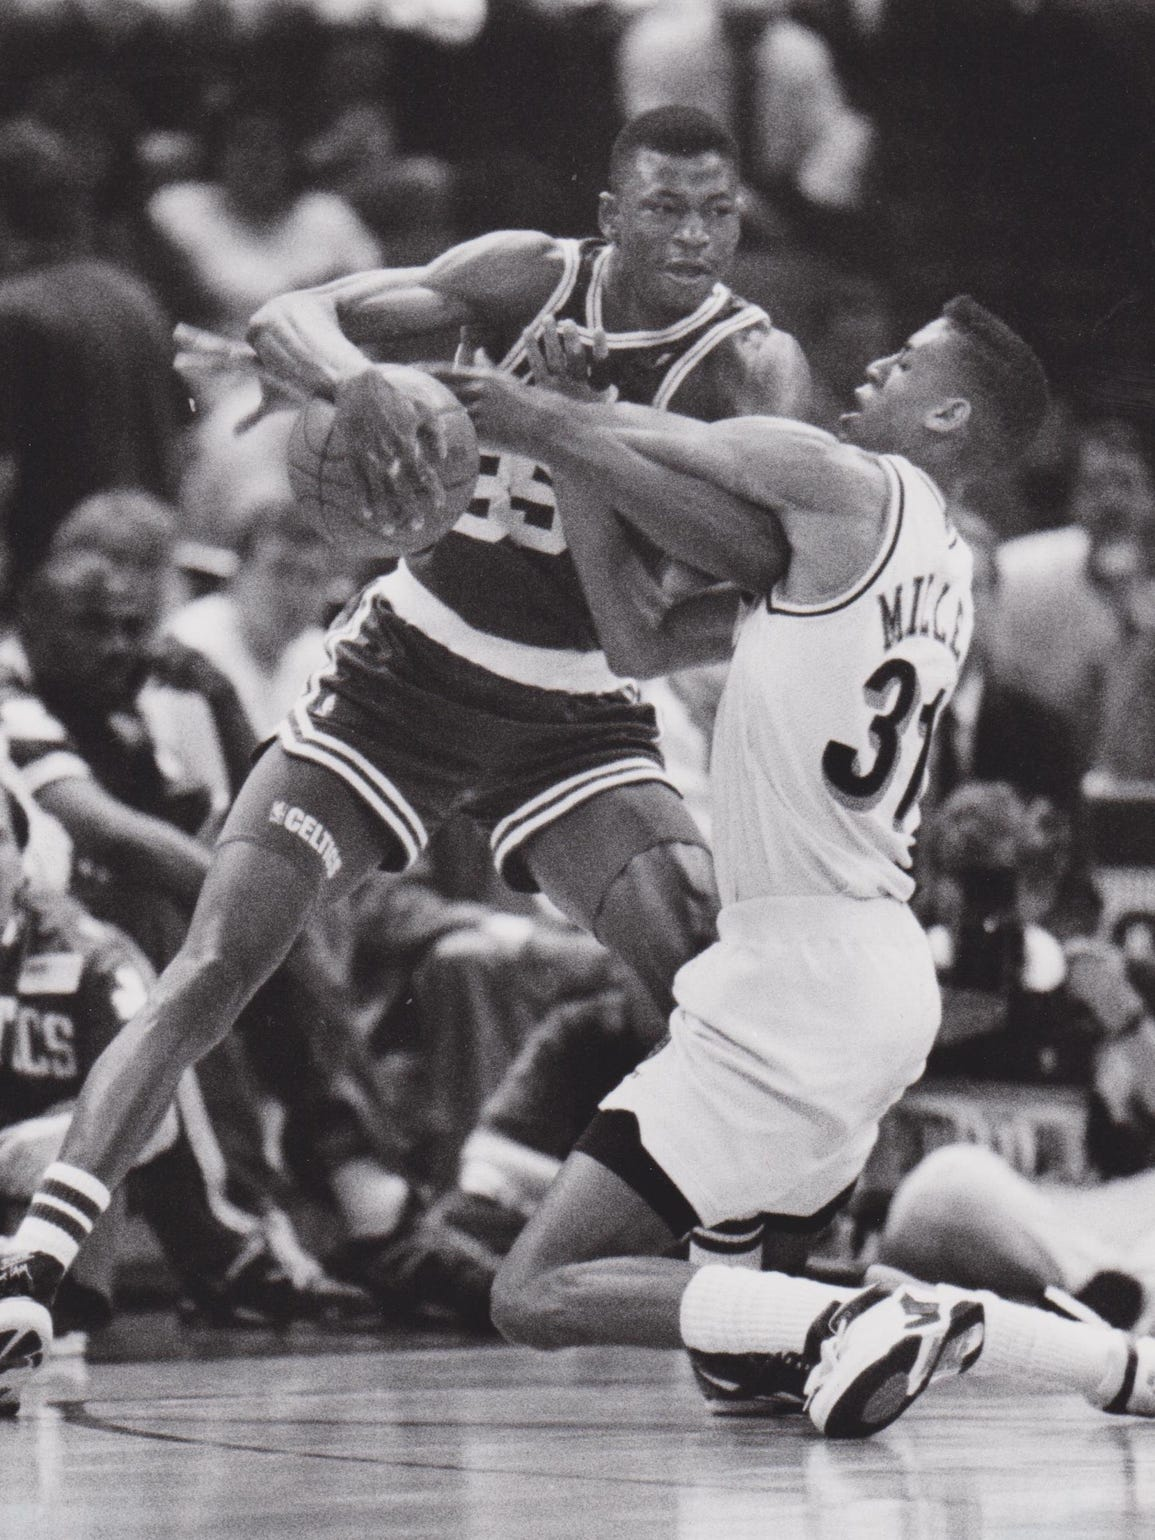 1991 Game 5 The start of the Indiana Pacers success the last